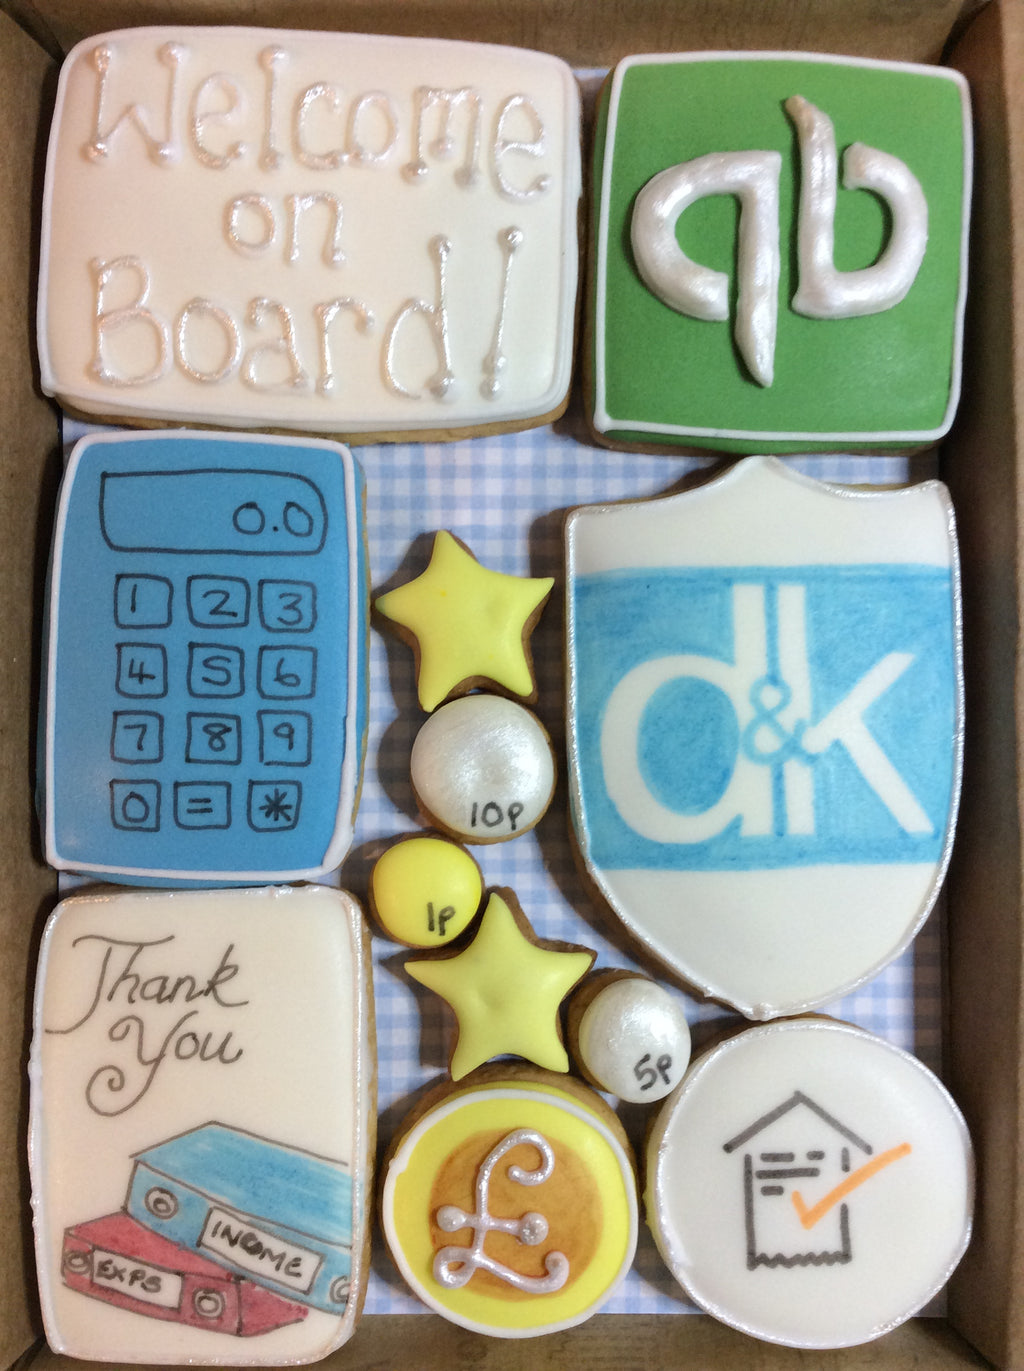 Welcome on board - Bespoke Corporate Cookie Box (Medium)